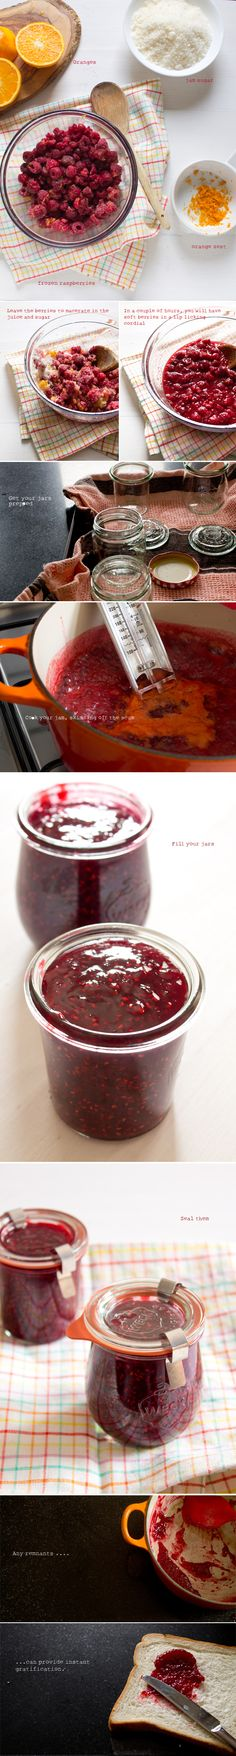 Raspberry and Orange Jam